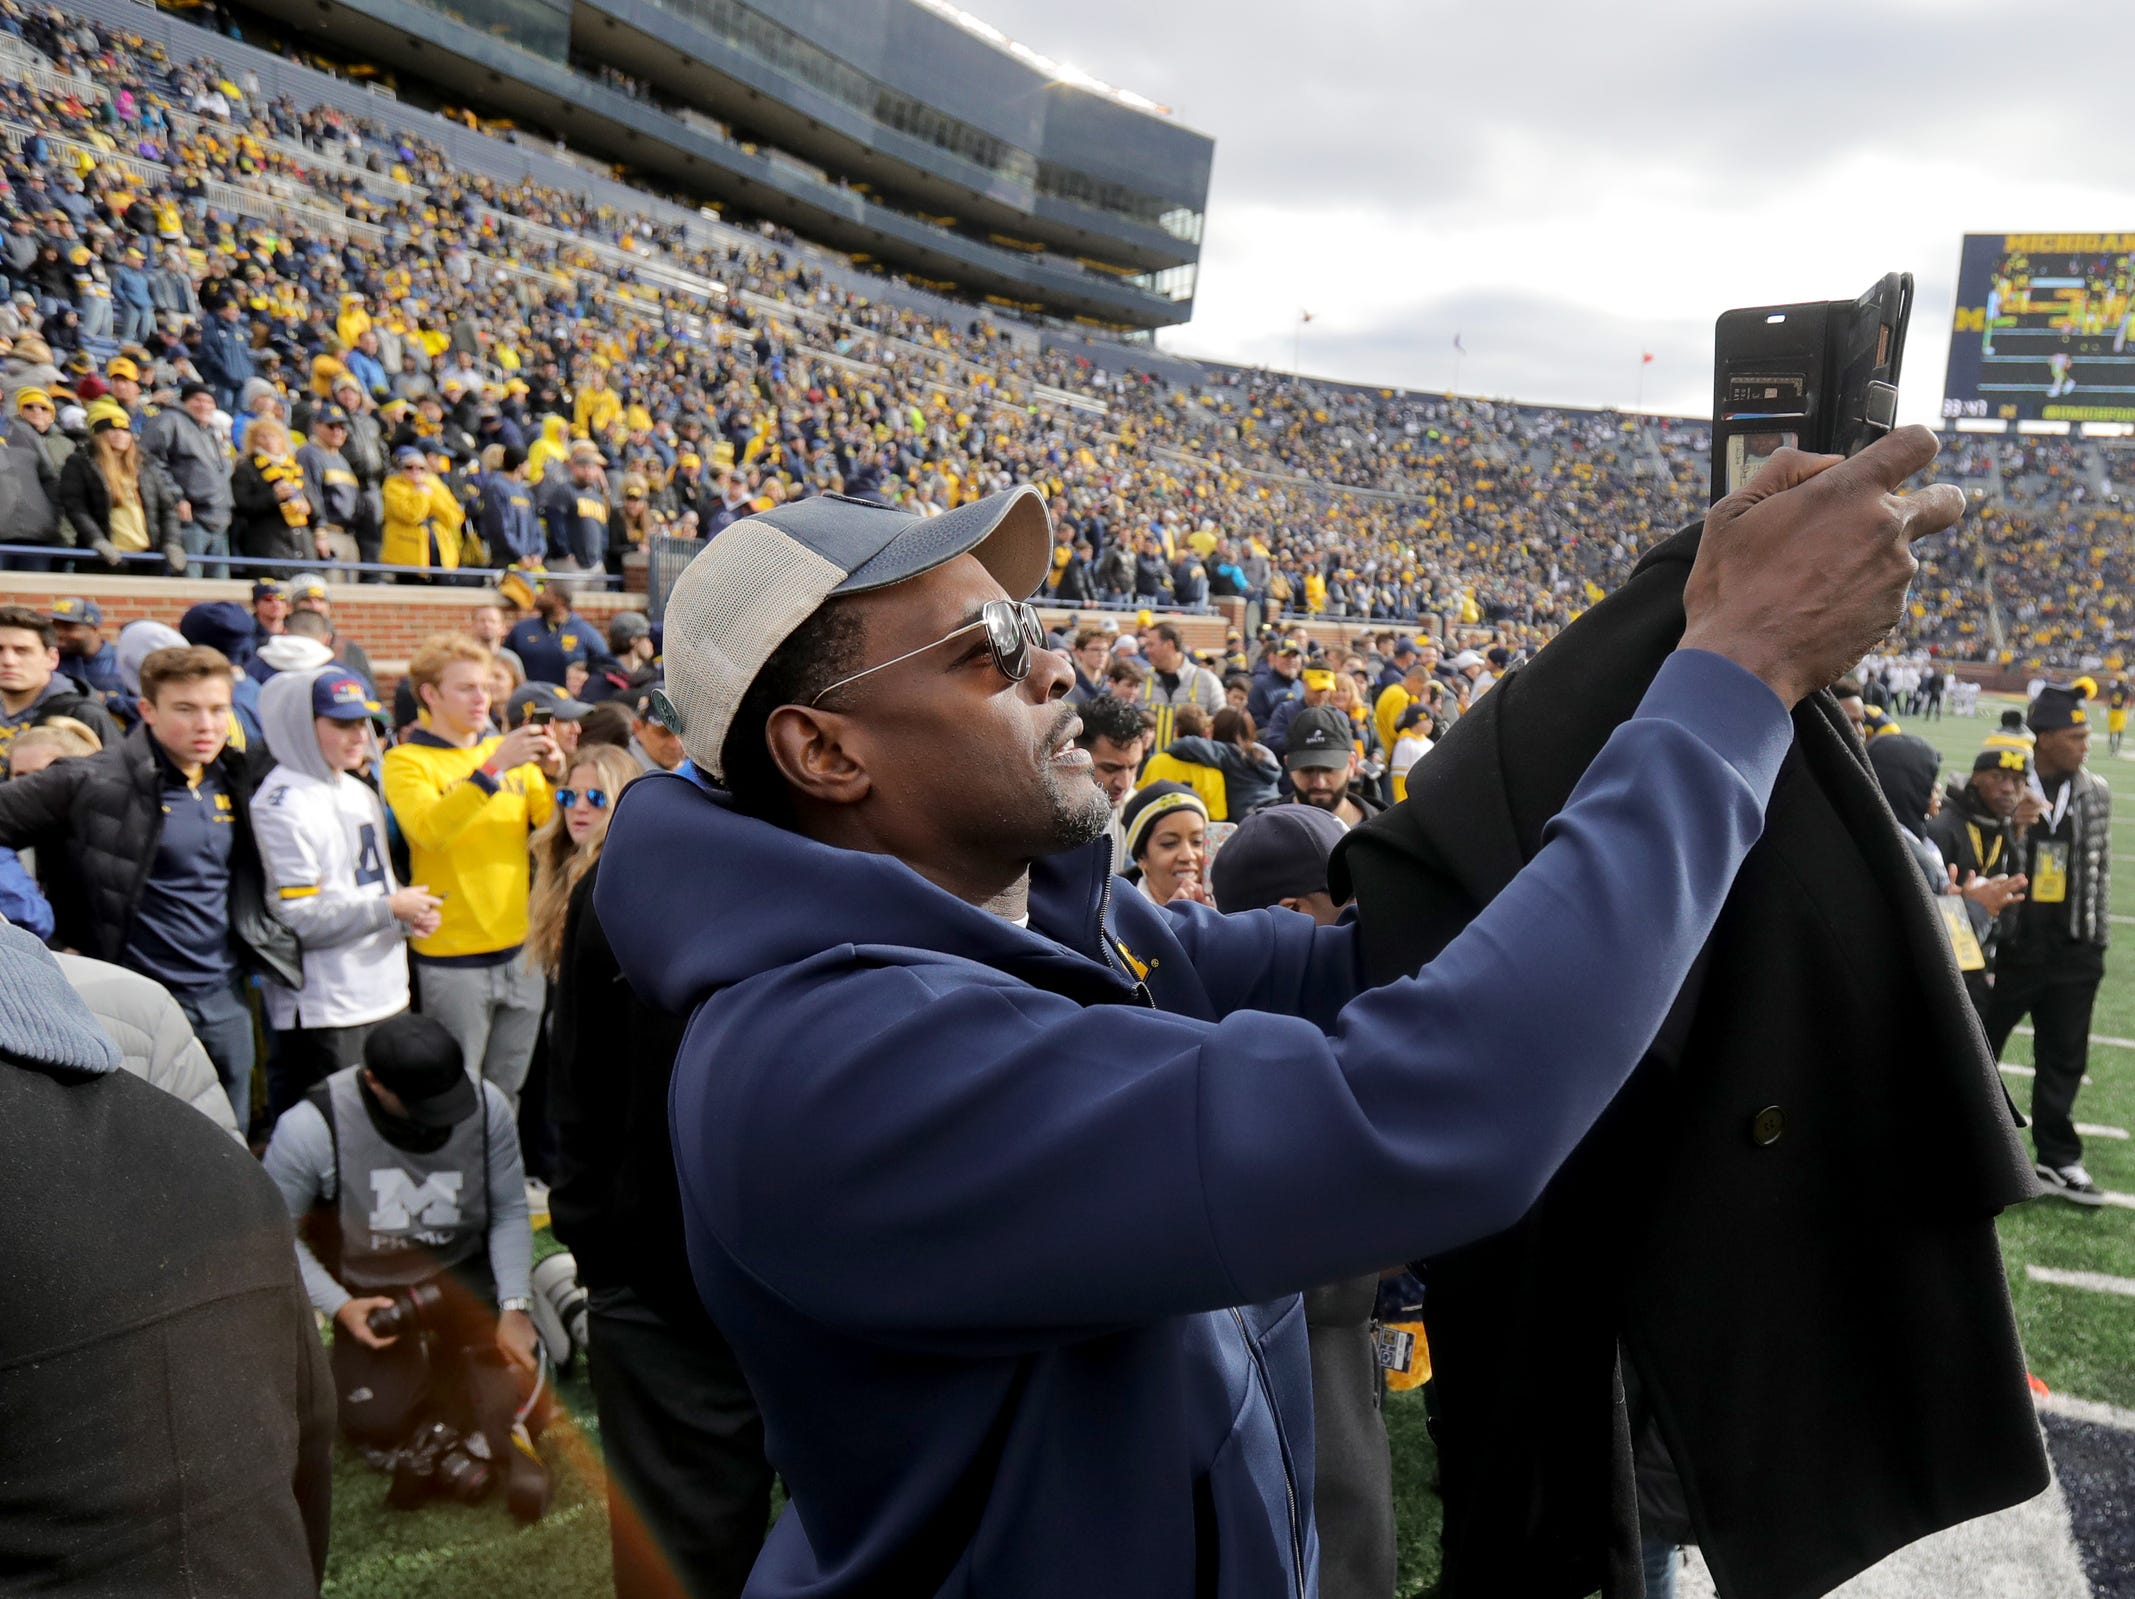 Former Michigan basketball player Chris Webber takes a selfie on the football field prior to the start of the Michigan and Penn State game on Saturday, Nov. 3,2018, at Michigan Stadium.